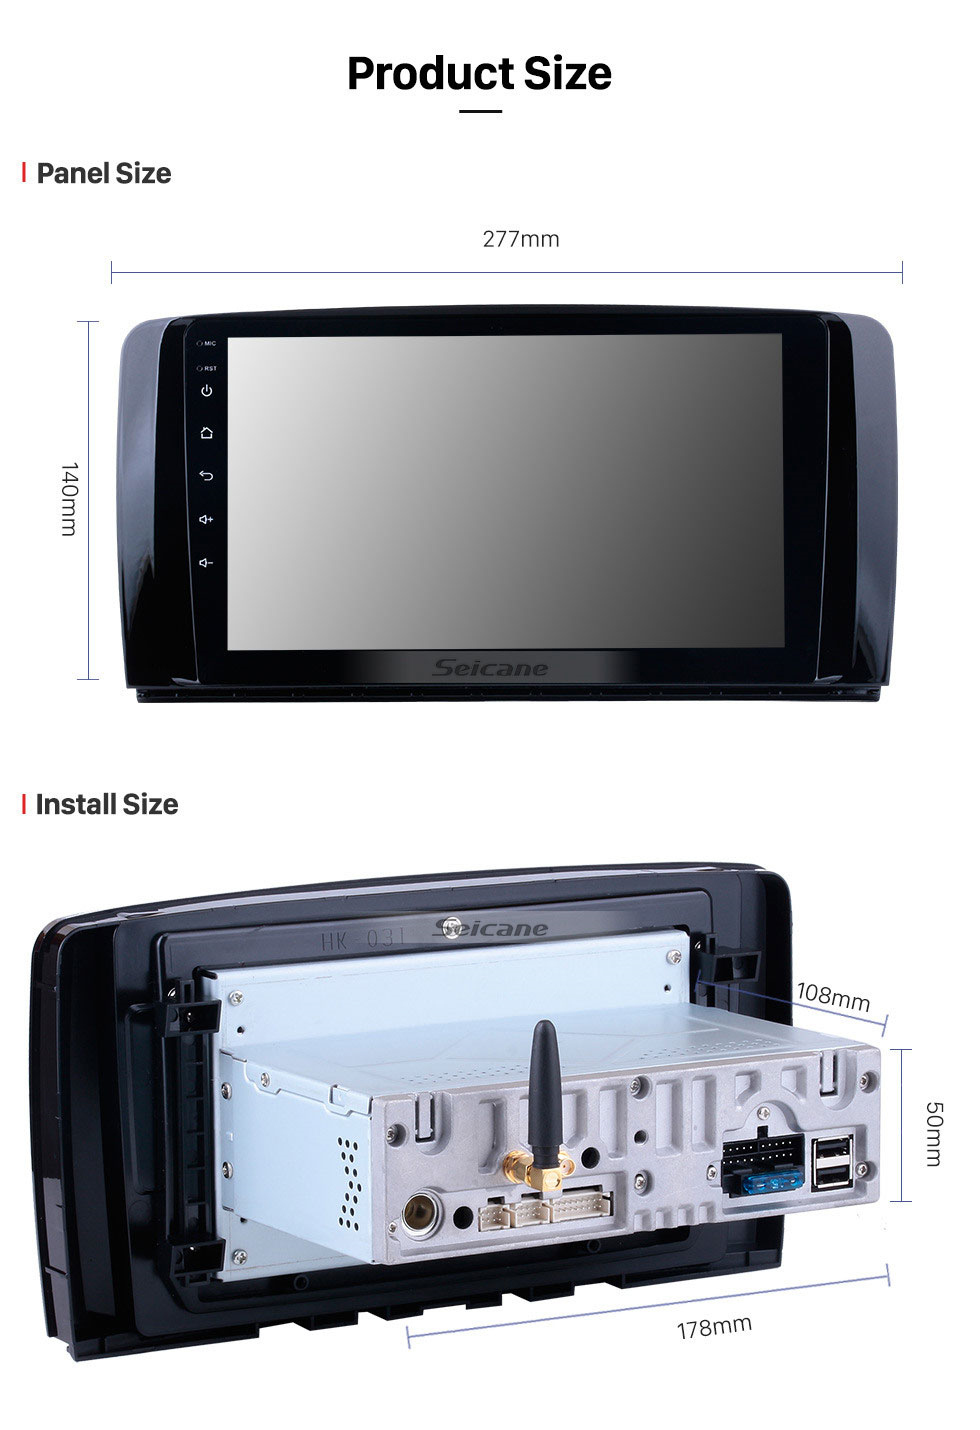 Seicane 9 inch 2006-2013 Mercedes Benz R Class W251 R280 R300 R320 R350 R63 Android 10.0 HD Touchscreen Radio GPS Navigation system with Bluetooth WIFI USB 1080P Video OBD2 DVR Mirror Link Steering wheel control